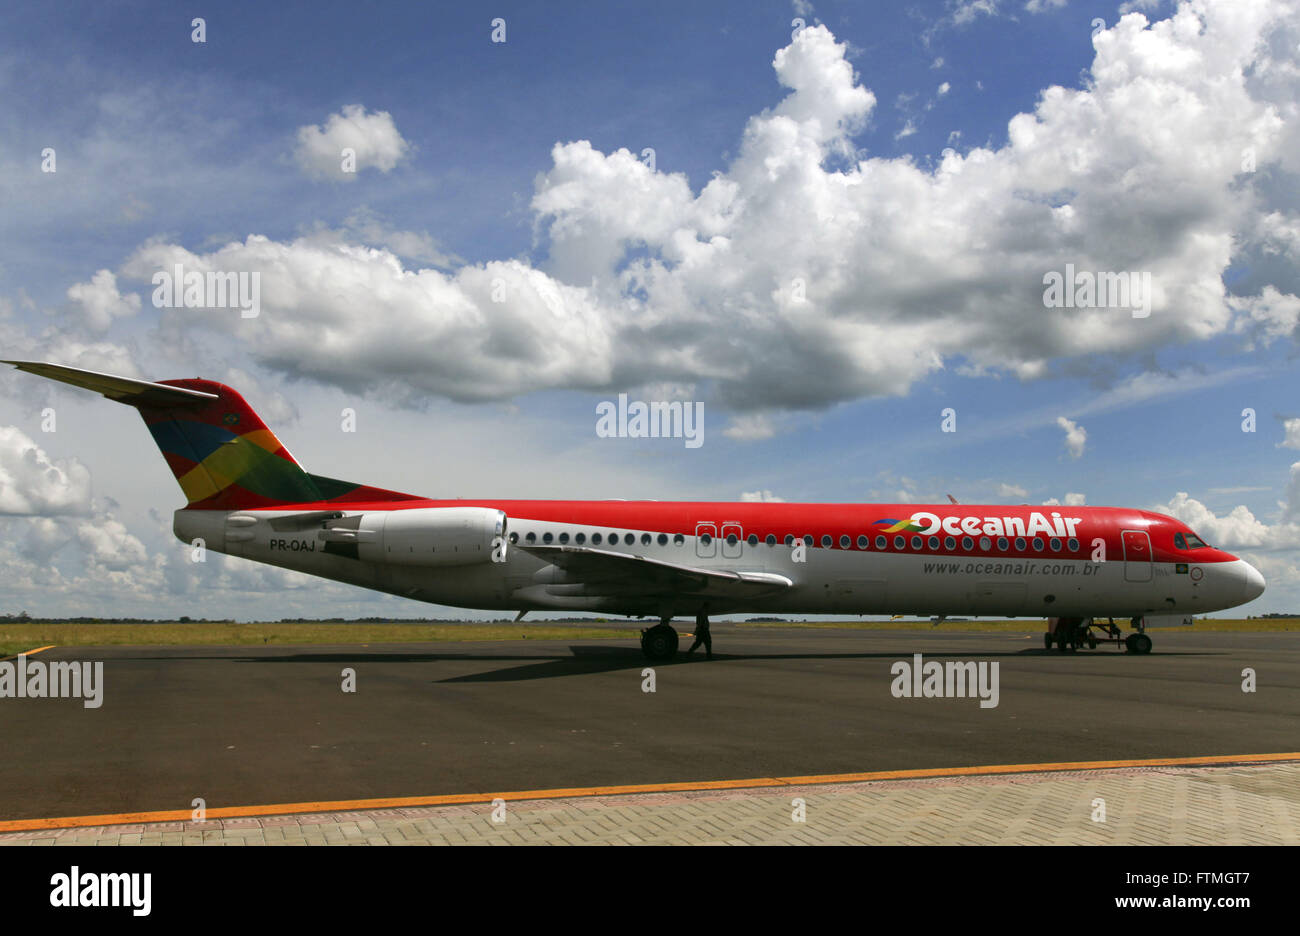 Plane on the runway of the airport Chapeco - Serafin Enoss Bertaso - Stock Image